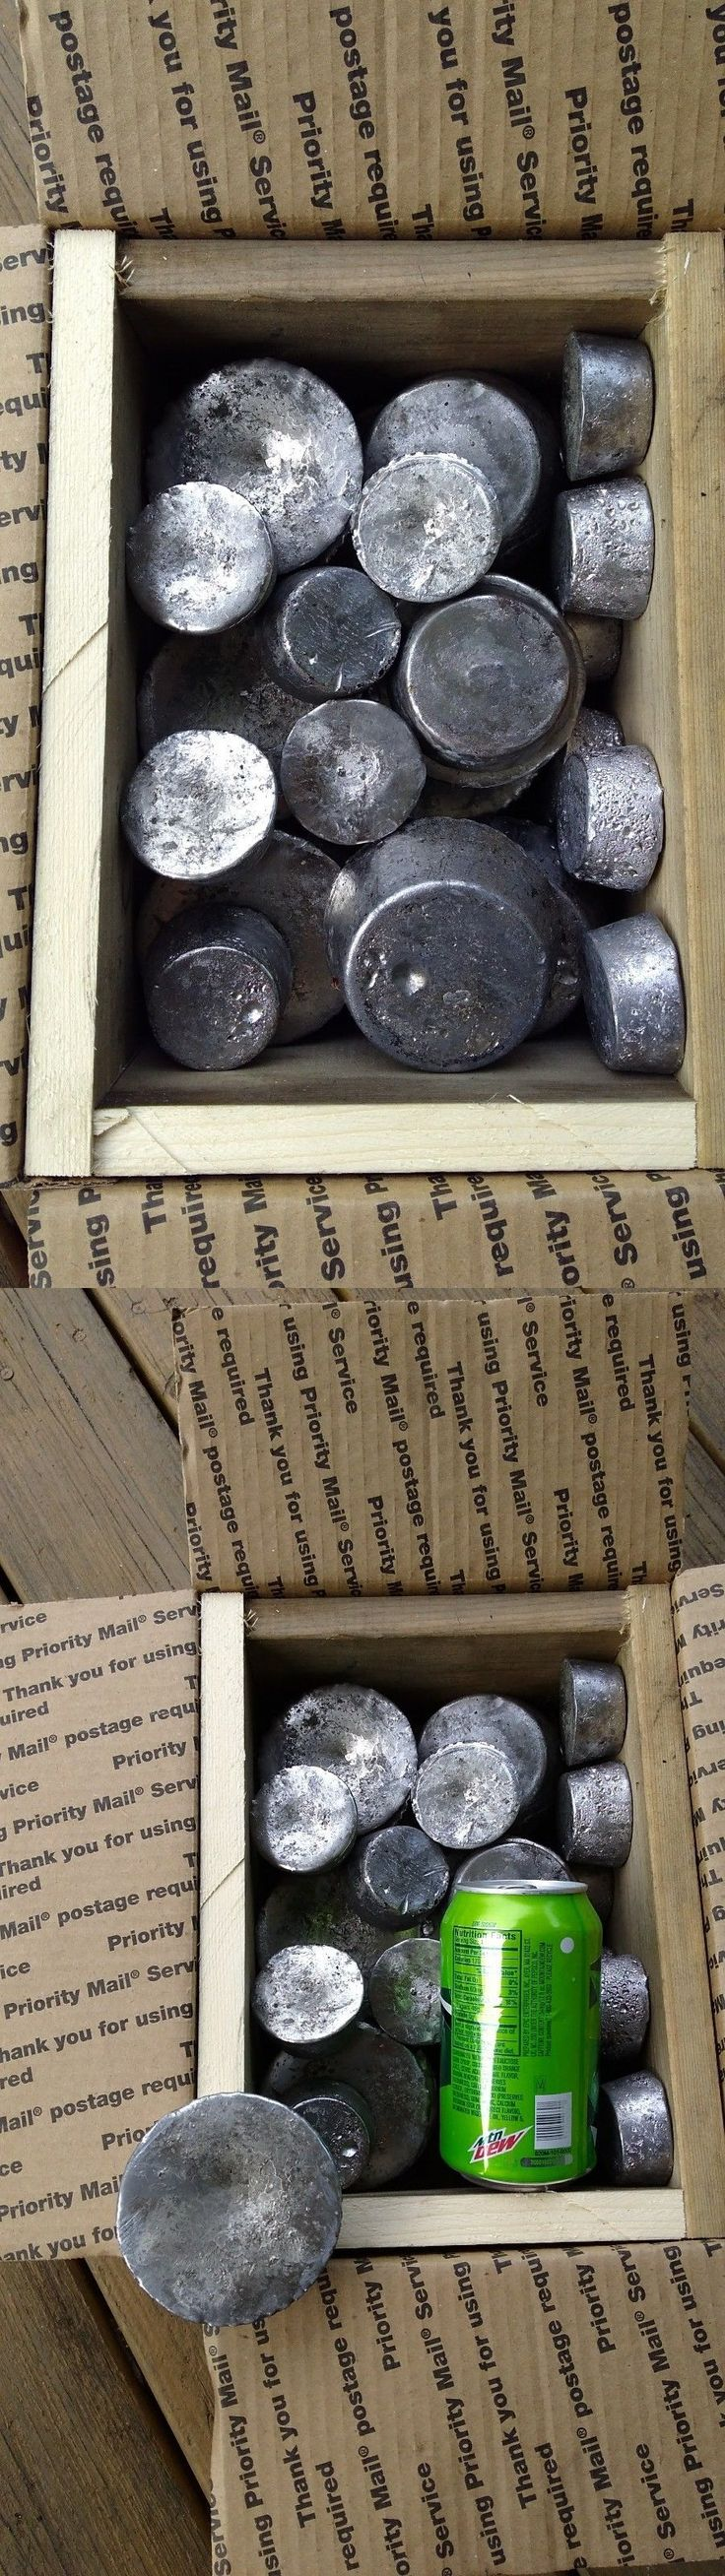 Molds 71118: 55 Lbs Of Lead Ingots Shipped In Reinforced Box -> BUY IT NOW ONLY: $58 on eBay!